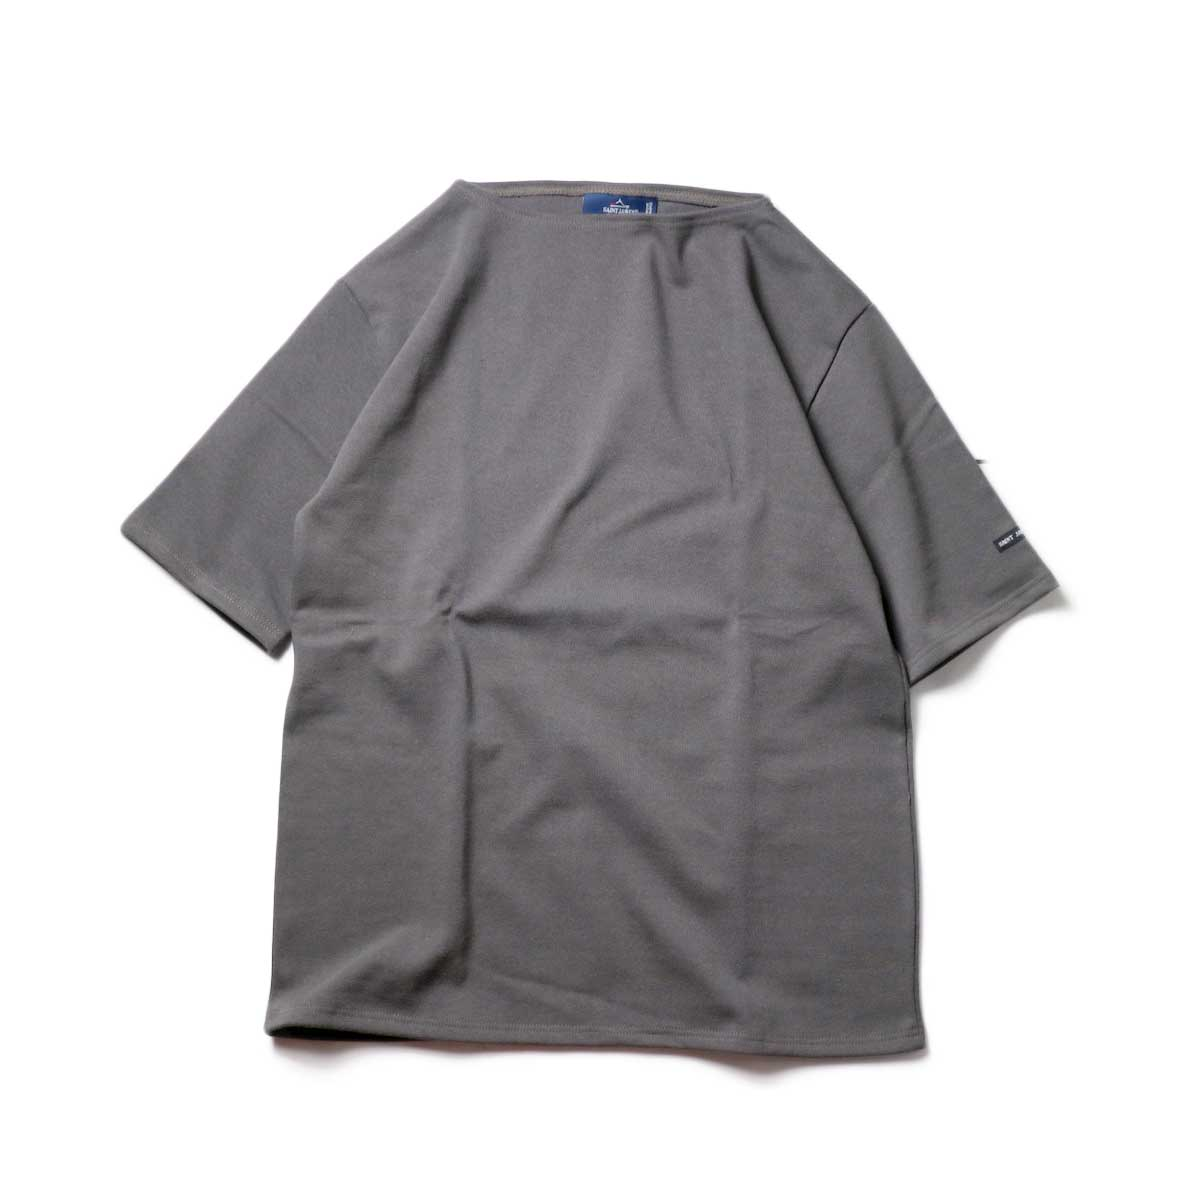 SAINT JAMES / OUESSANT SHORT SLEEVE SHIRTS (Taupe)